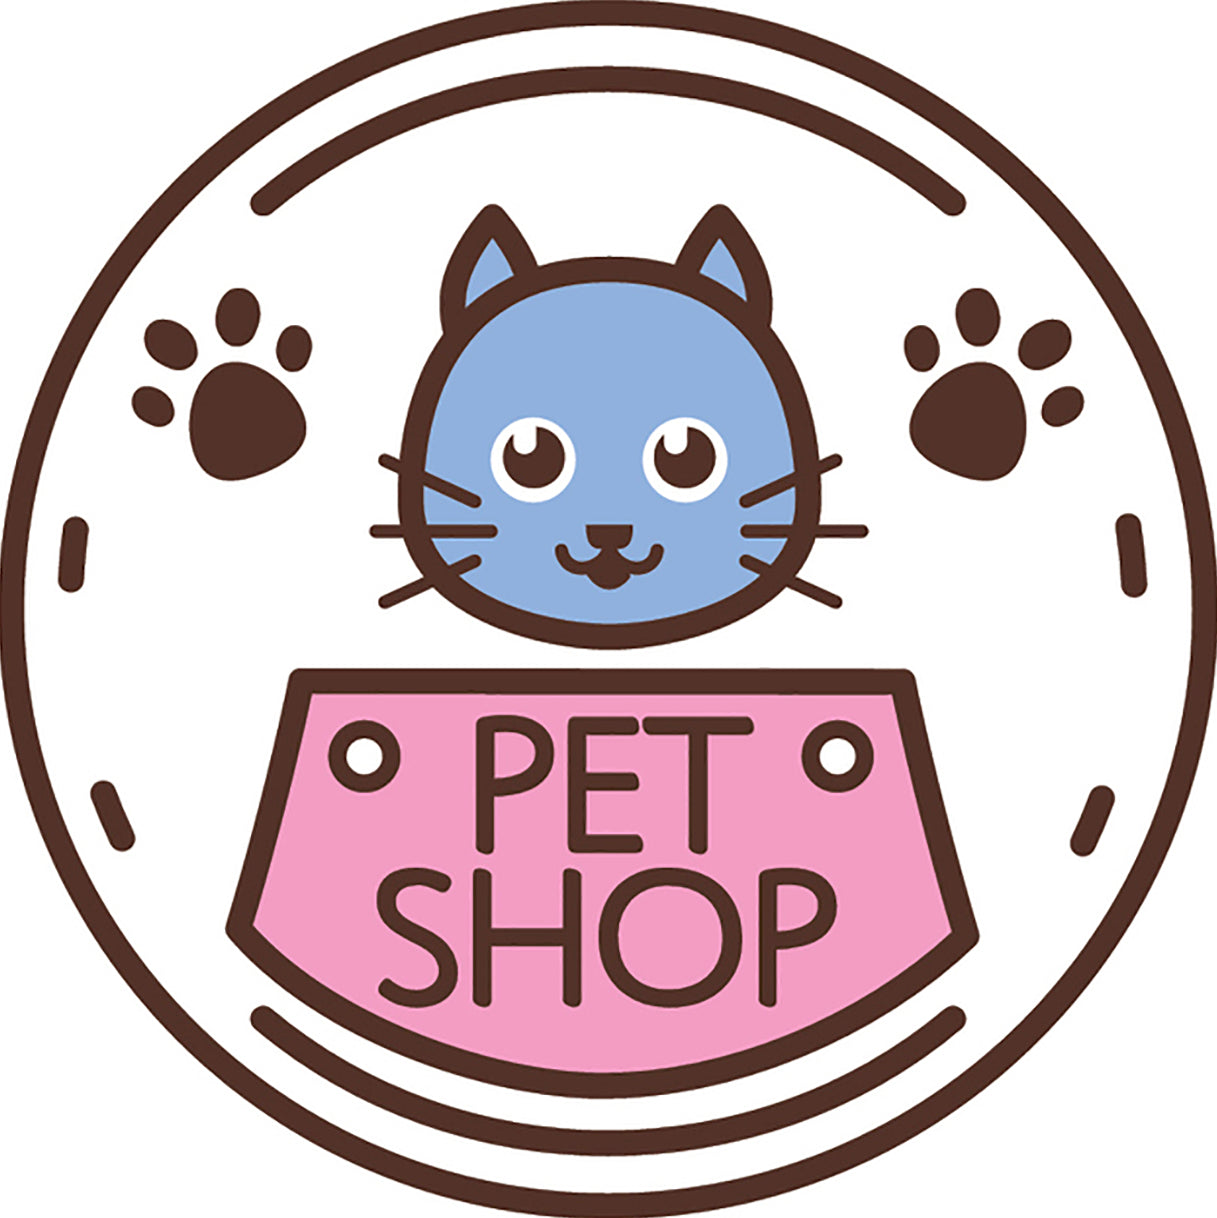 Cute Veterinary Clinic Pet Shop Cartoon Logo Icon #5 Vinyl Decal Sticker